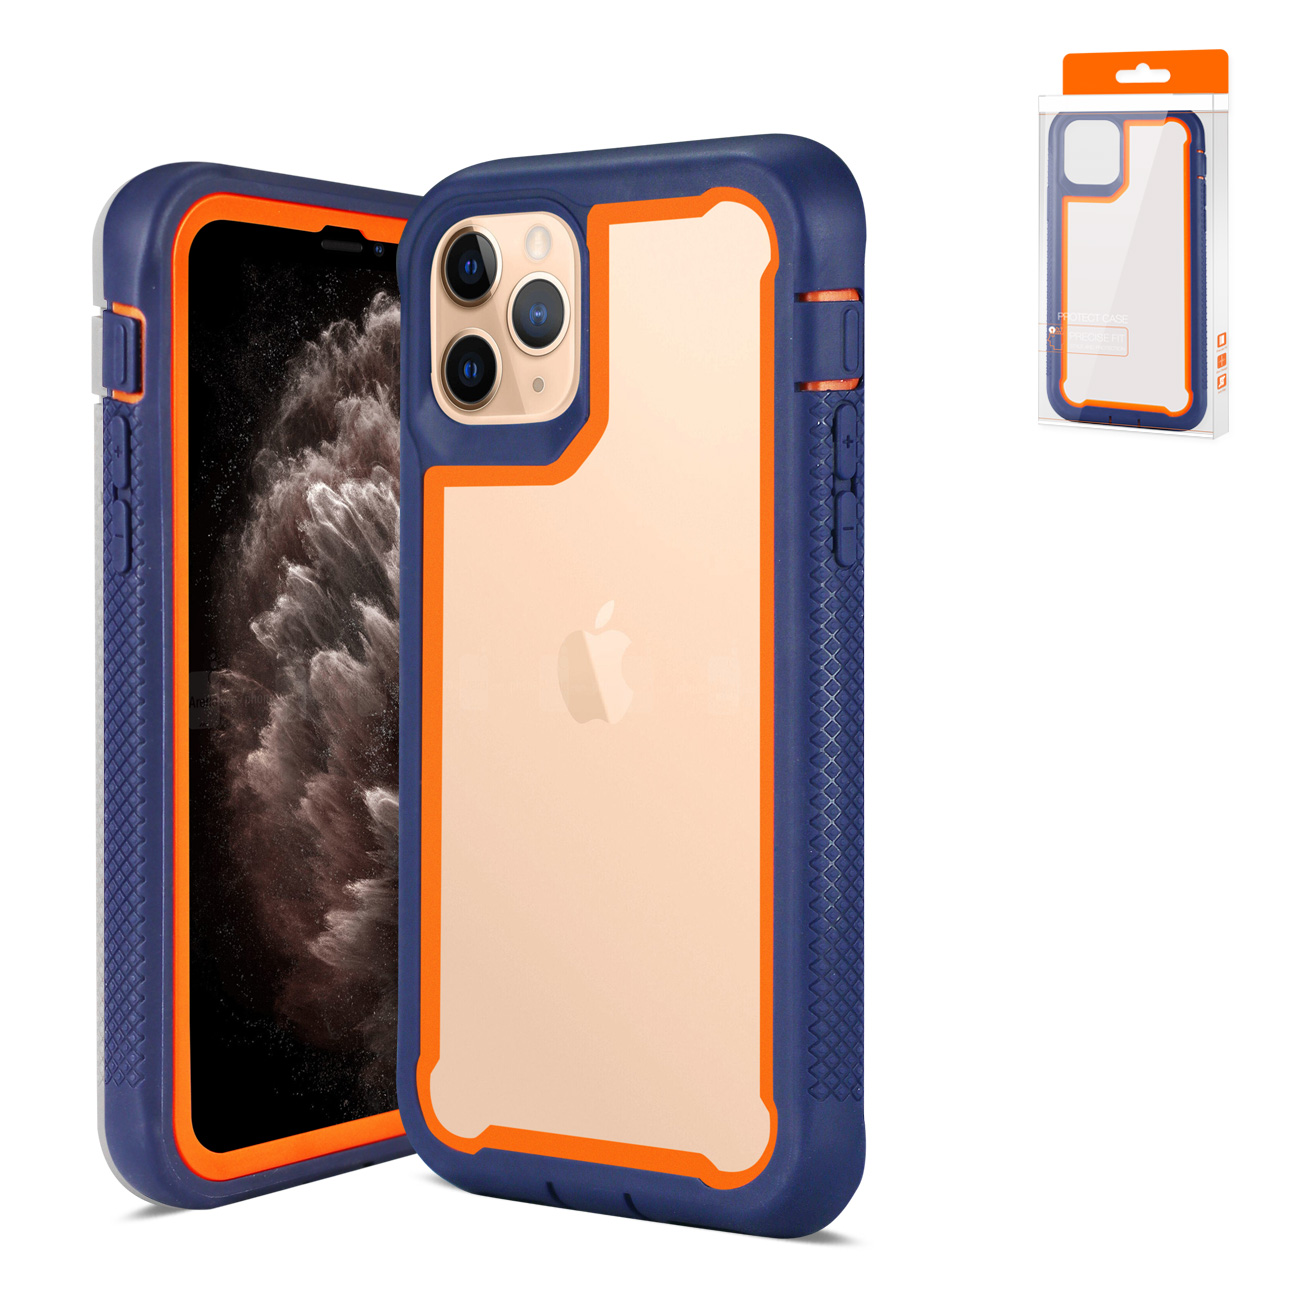 APPLE IPHONE 11 PRO MAX Bumper Case In Navy